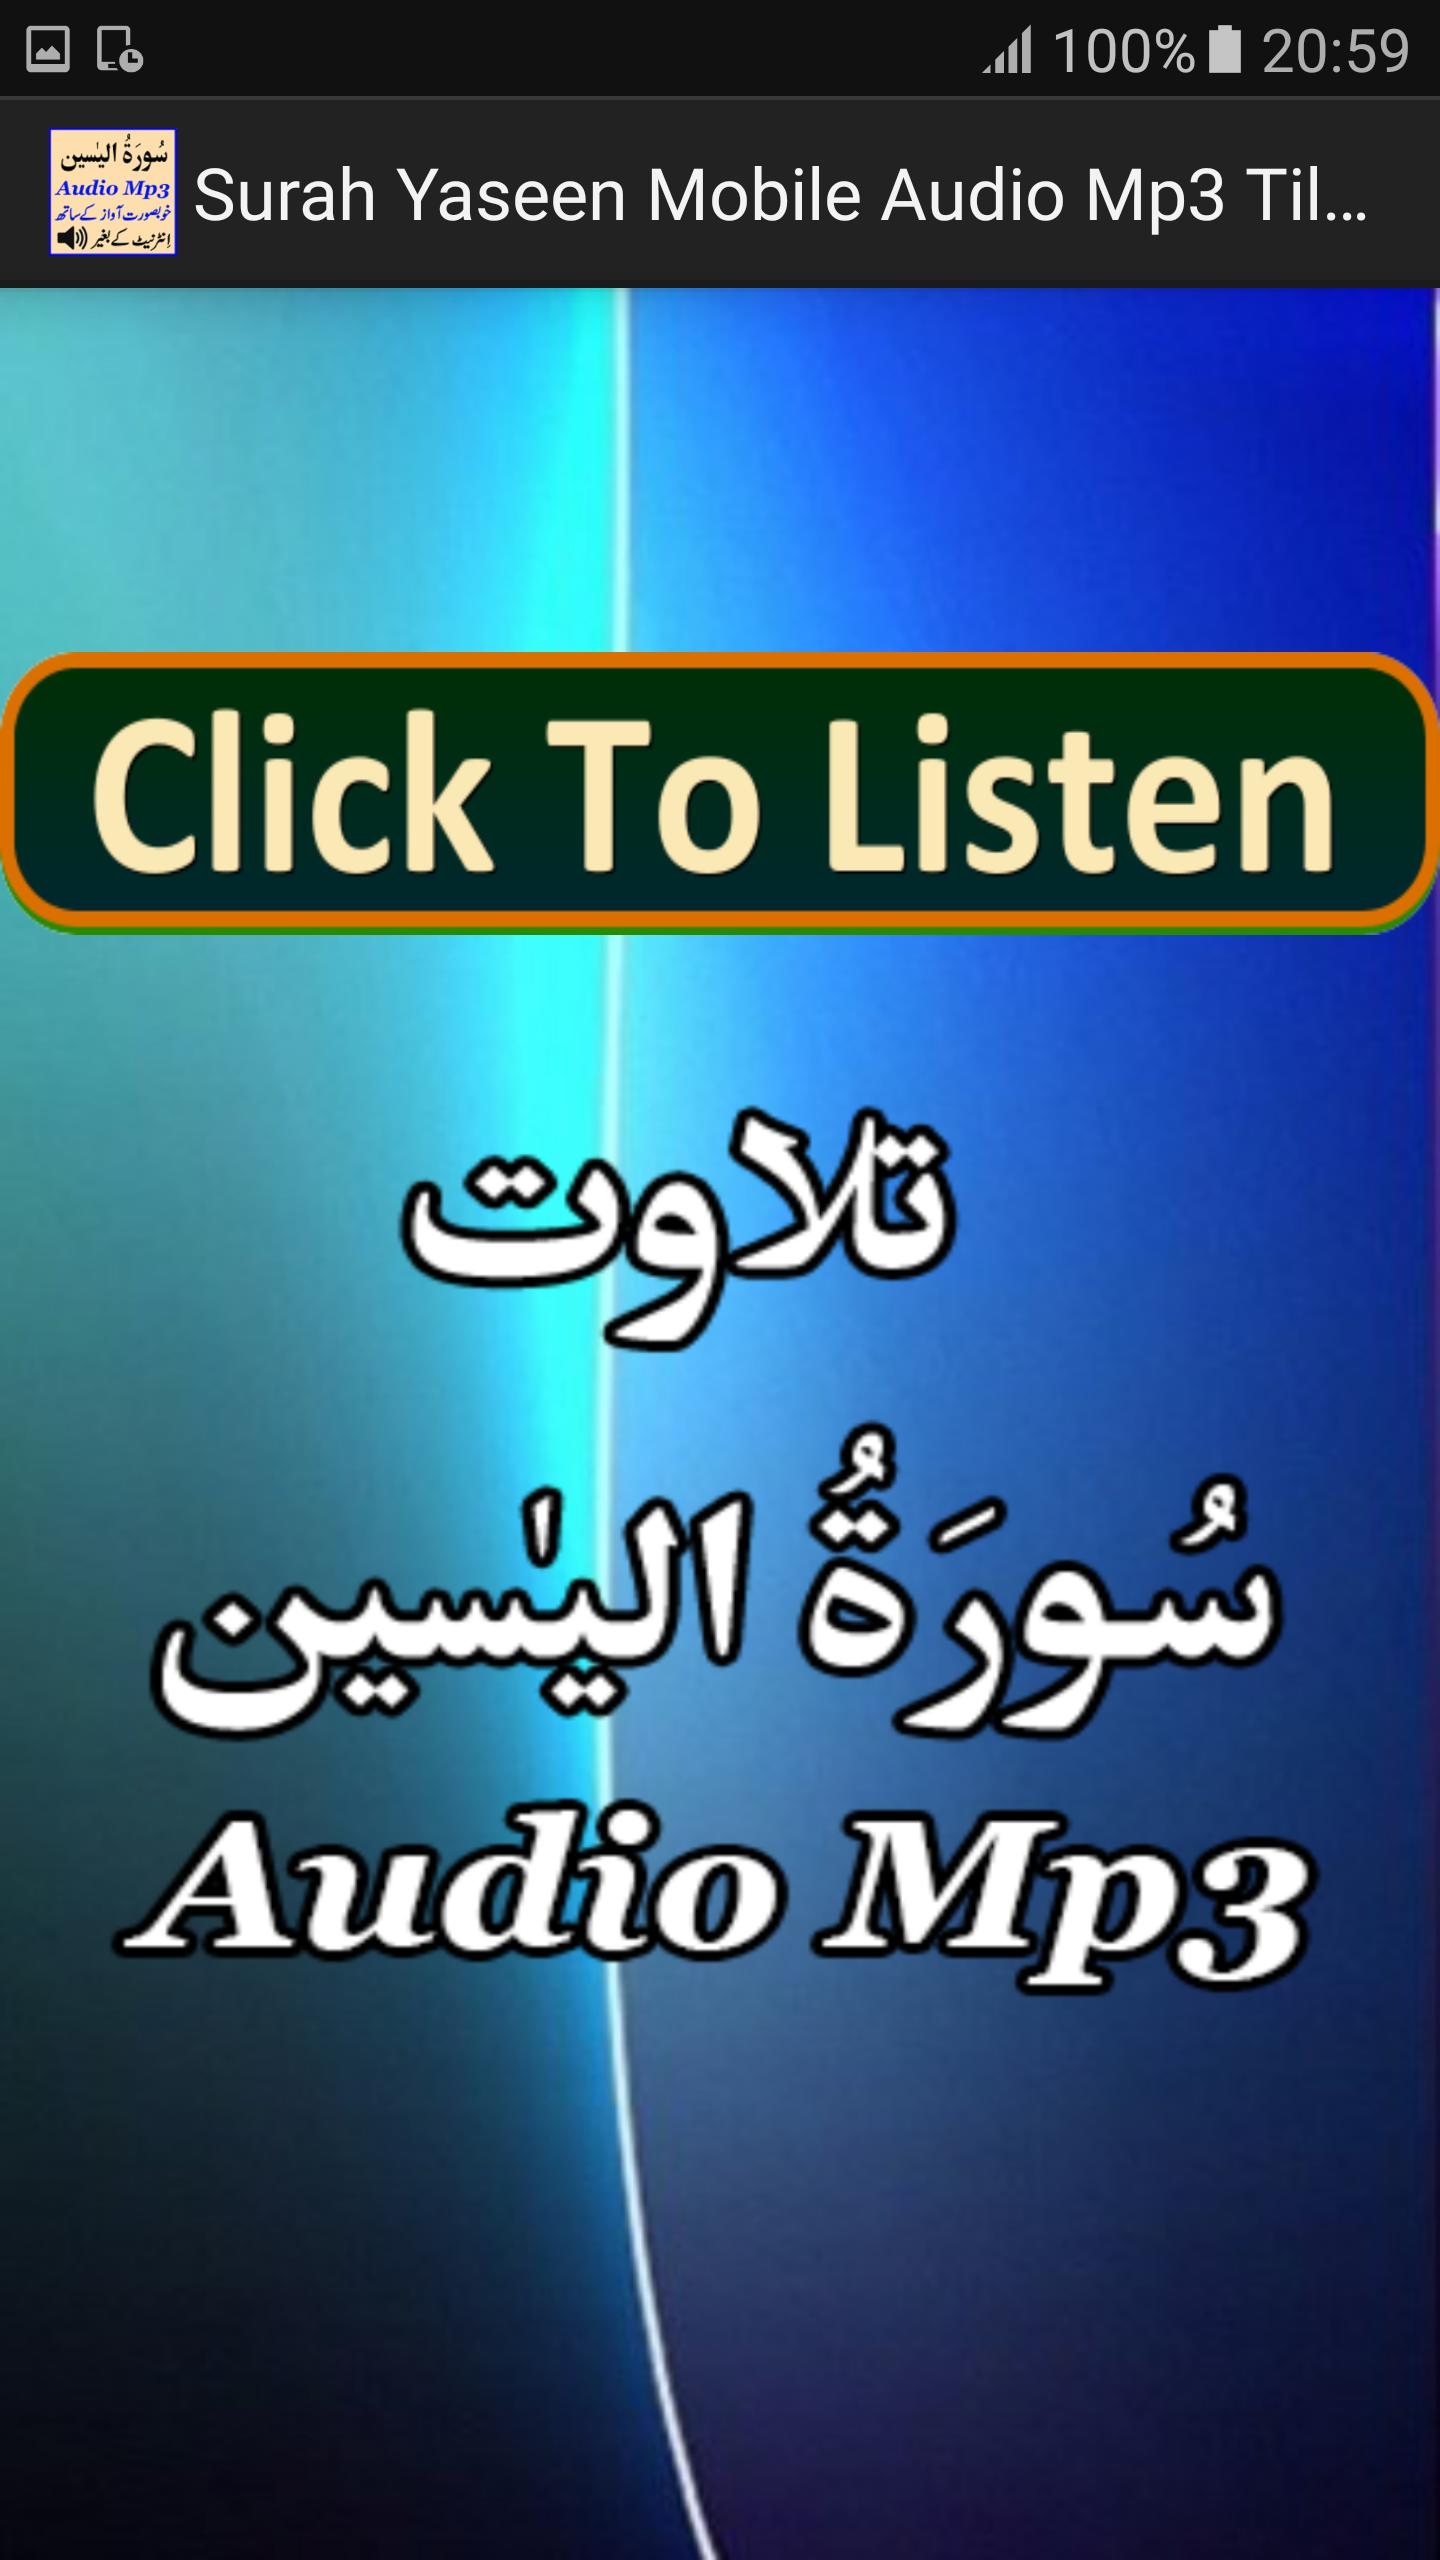 Surah rahman full mp3 free download | Download Surah Rahman